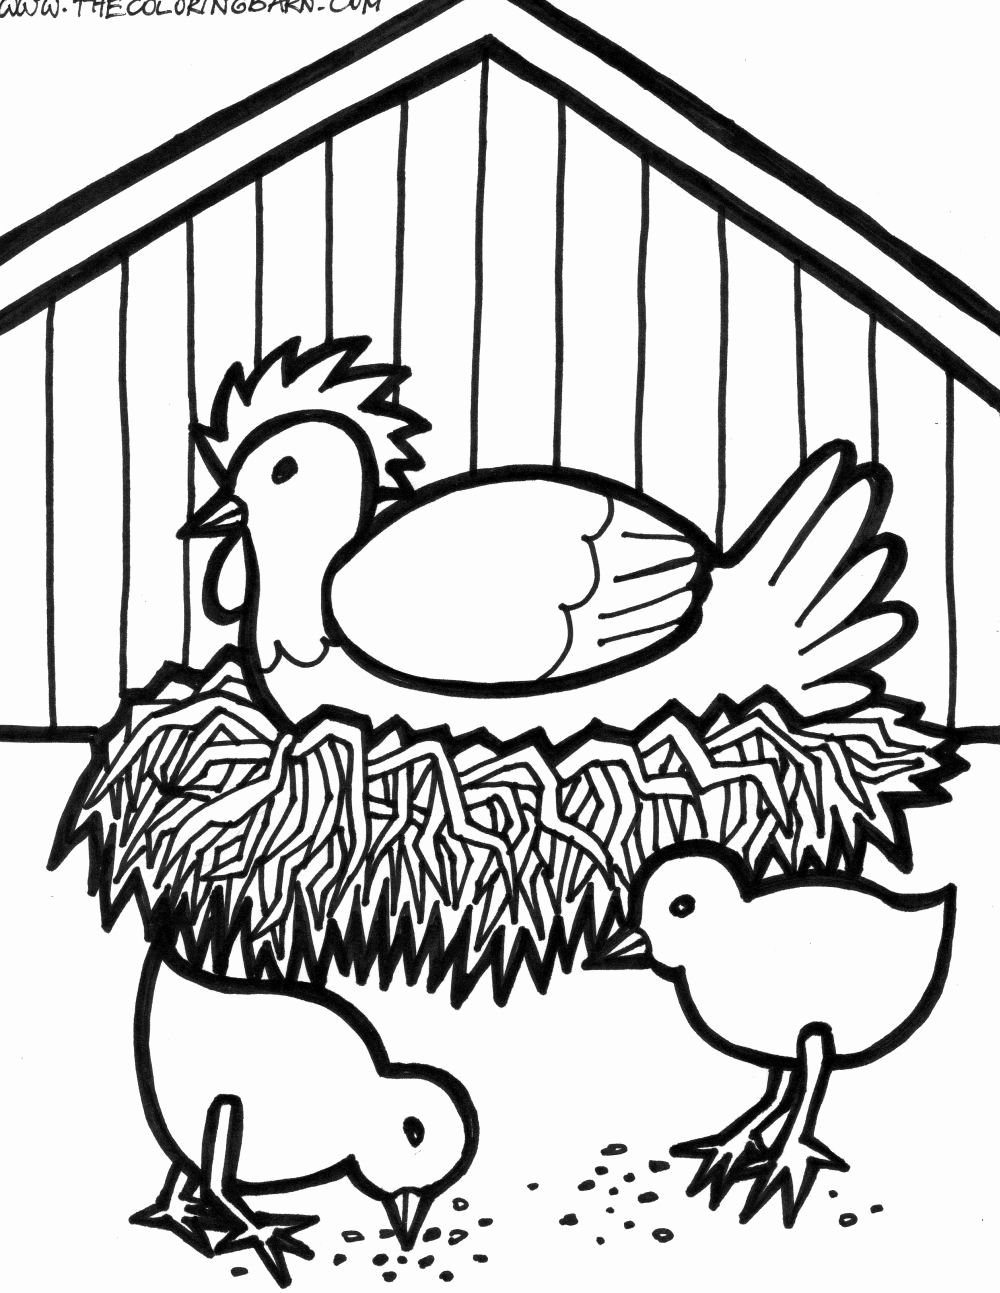 Free Farm Animal Coloring Pages For Kids Farm Animal Coloring Pages Animal Coloring Pages Coloring Pictures Of Animals